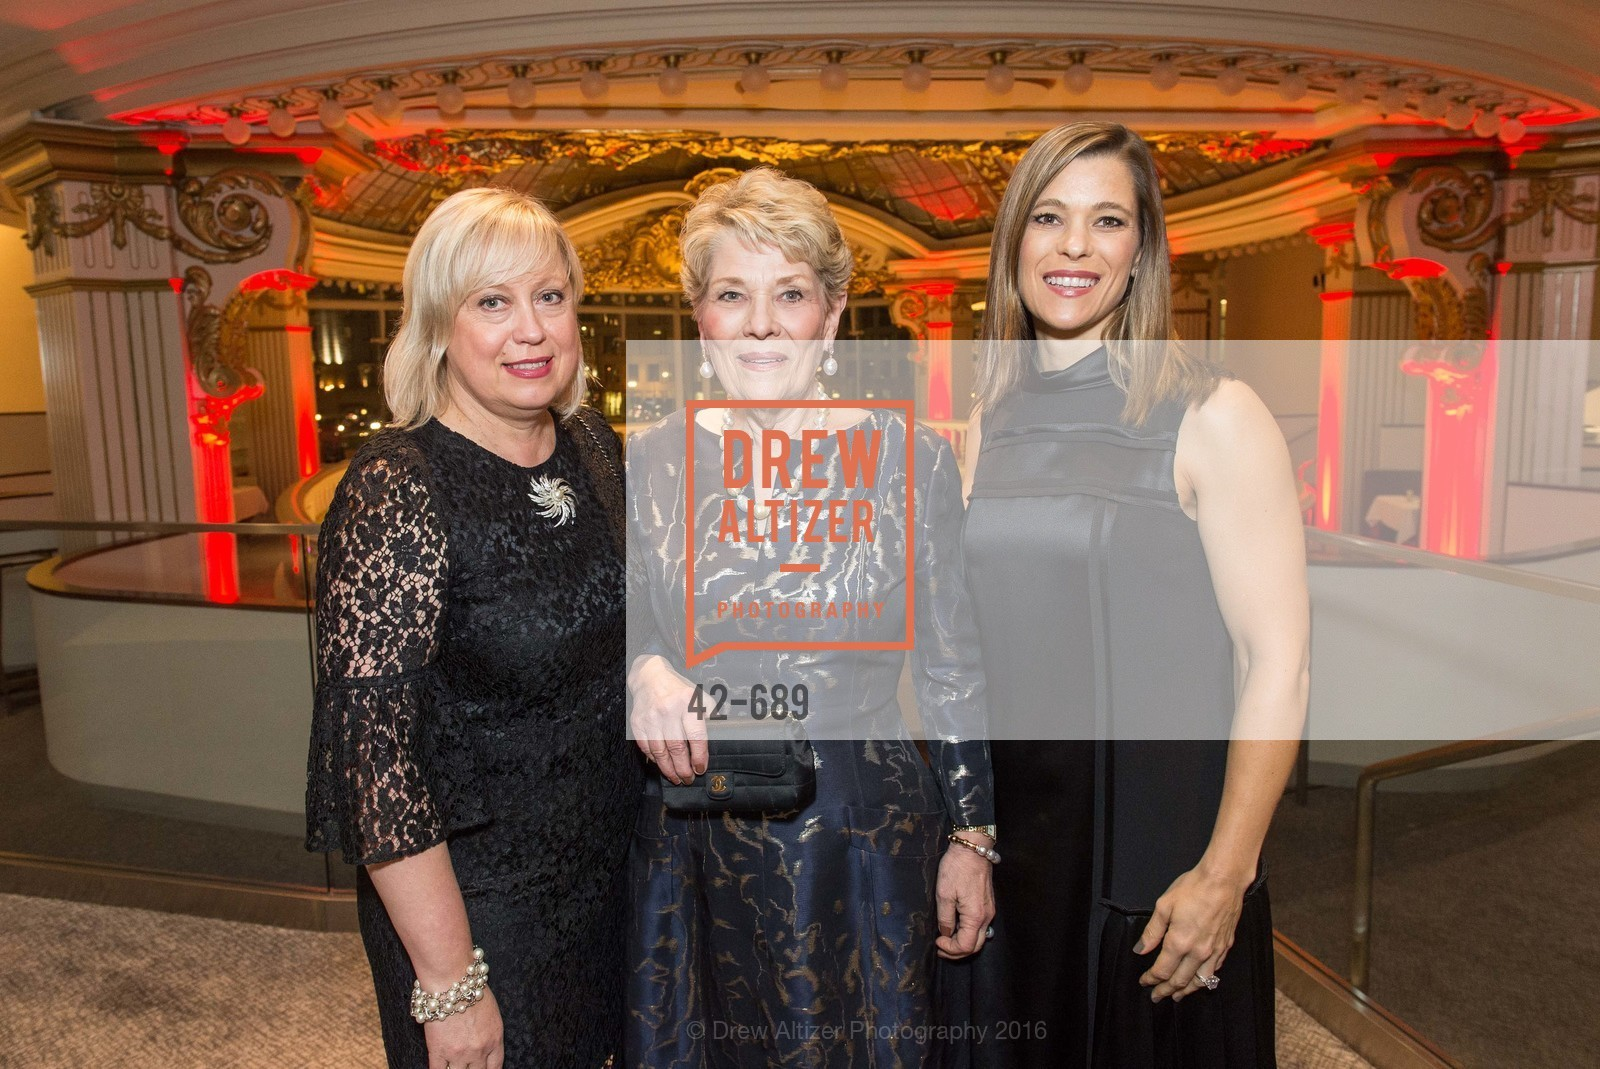 Irina Khlevner, Mary Linn Wecker, Carla Fieser, Oscar de la Renta Cocktail Party with Boaz Mazor, The Rotunda Restaurant, January 19th, 2016,Drew Altizer, Drew Altizer Photography, full-service agency, private events, San Francisco photographer, photographer california